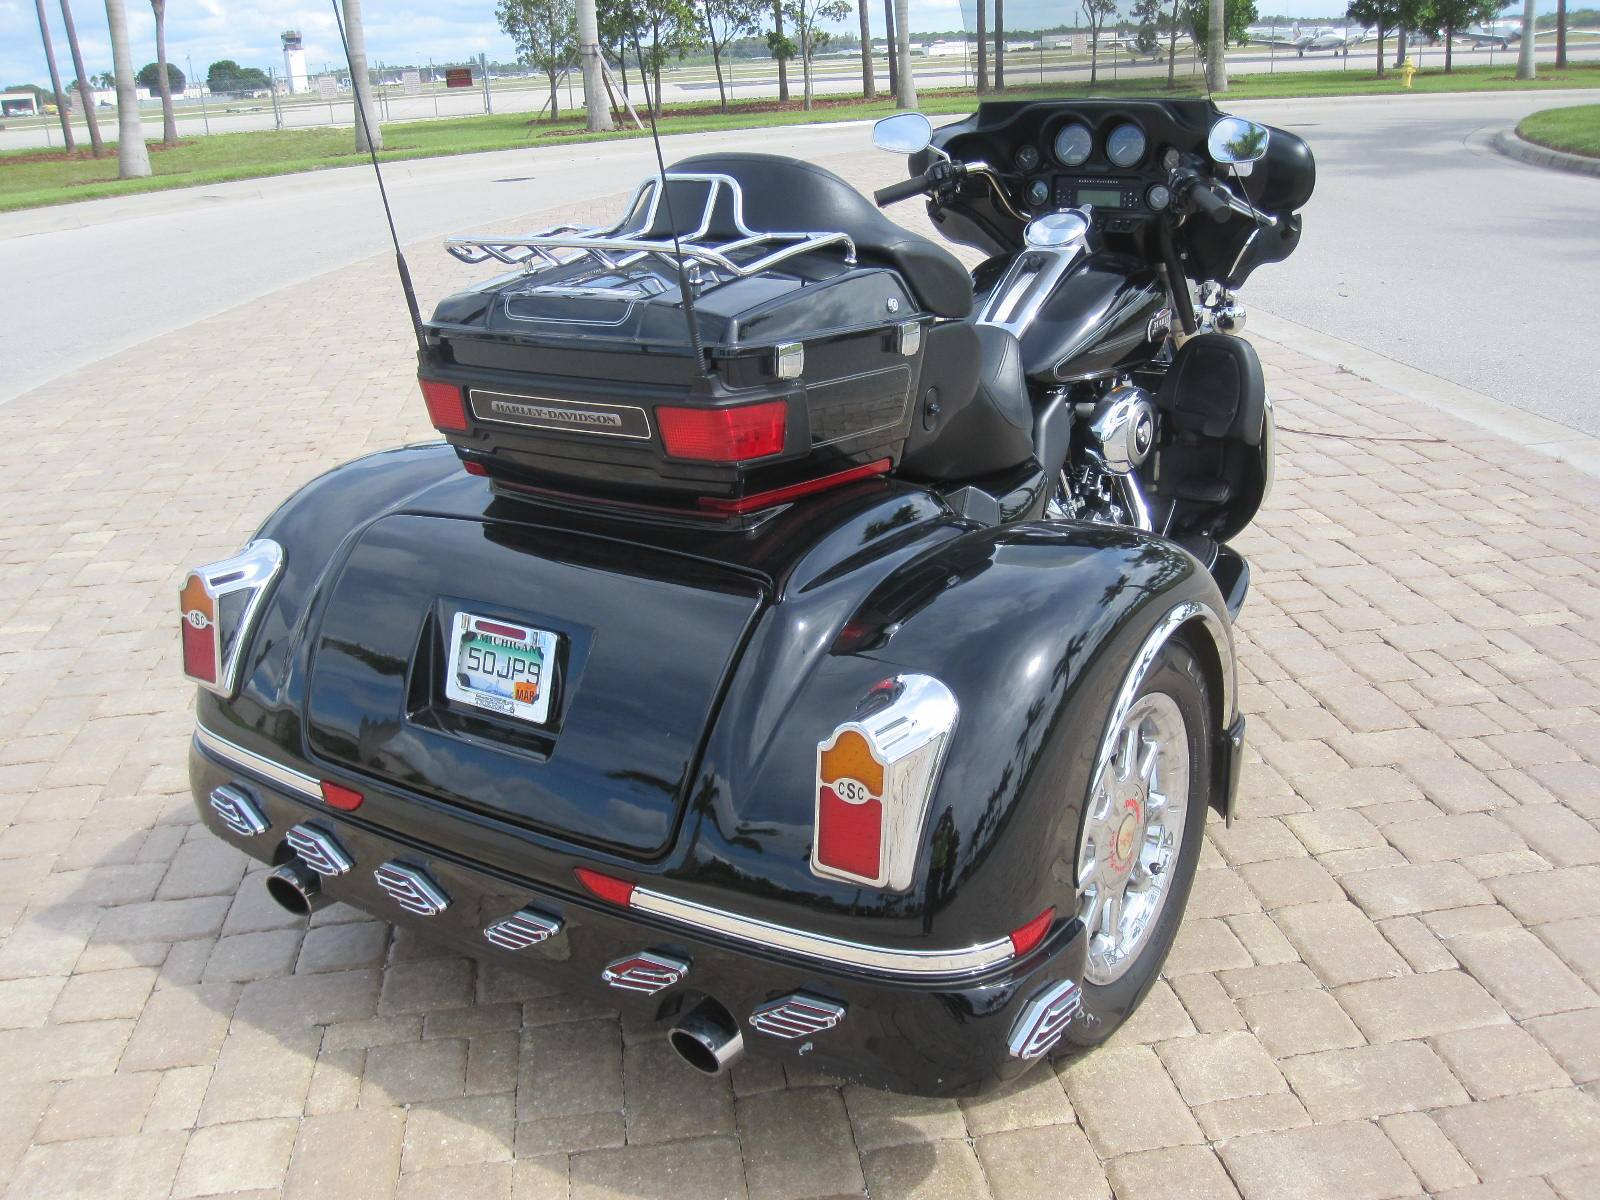 2010 Harley-Davidson California Sidecar in Fort Myers, Florida - Photo 10